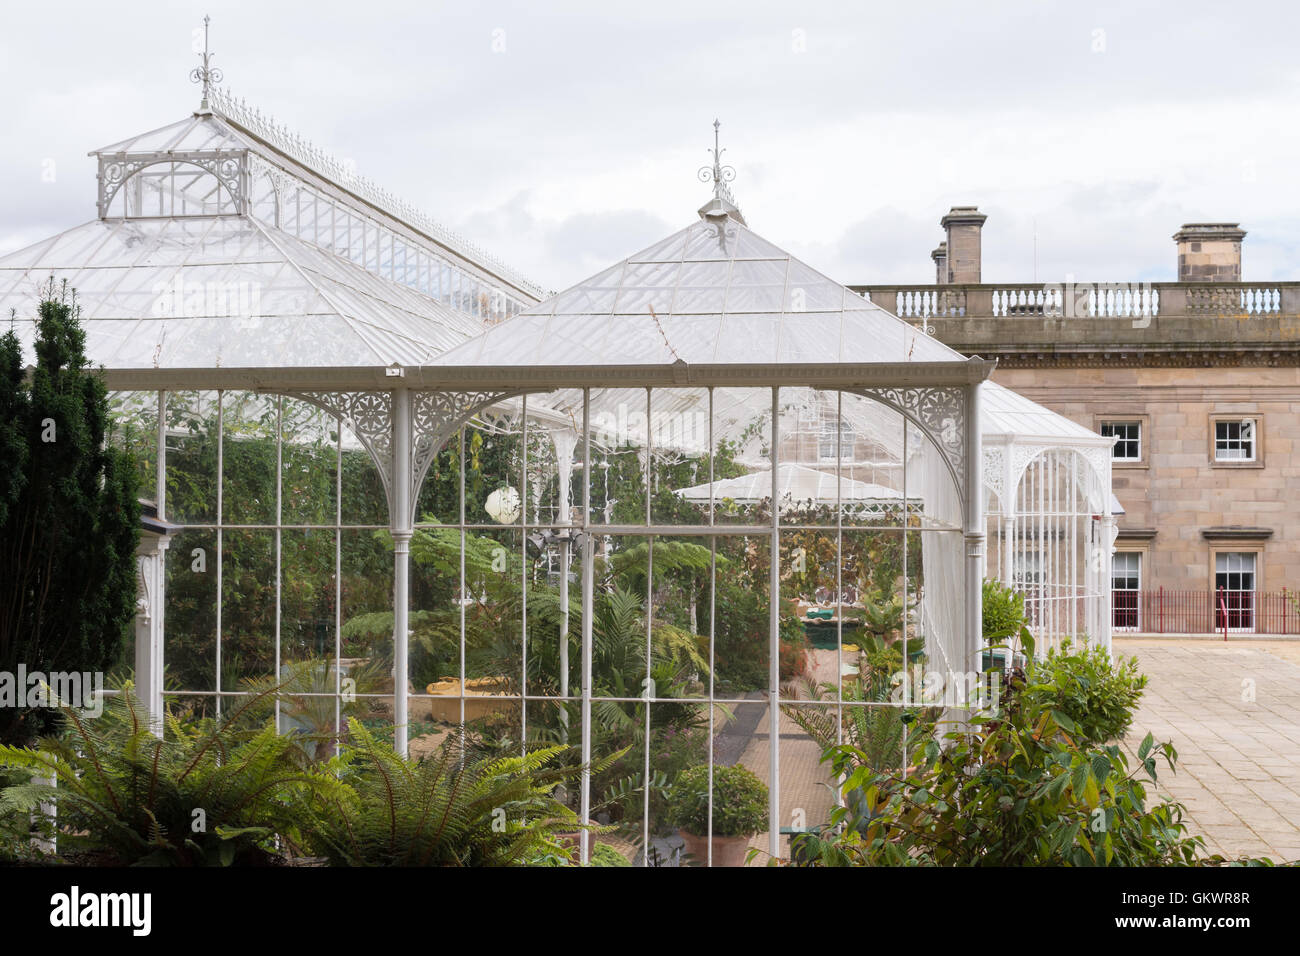 Wentworth Castle - Victorian Conservatory and Country House, Stainborough, Barnsley, South Yorkshire, England, UK - Stock Image